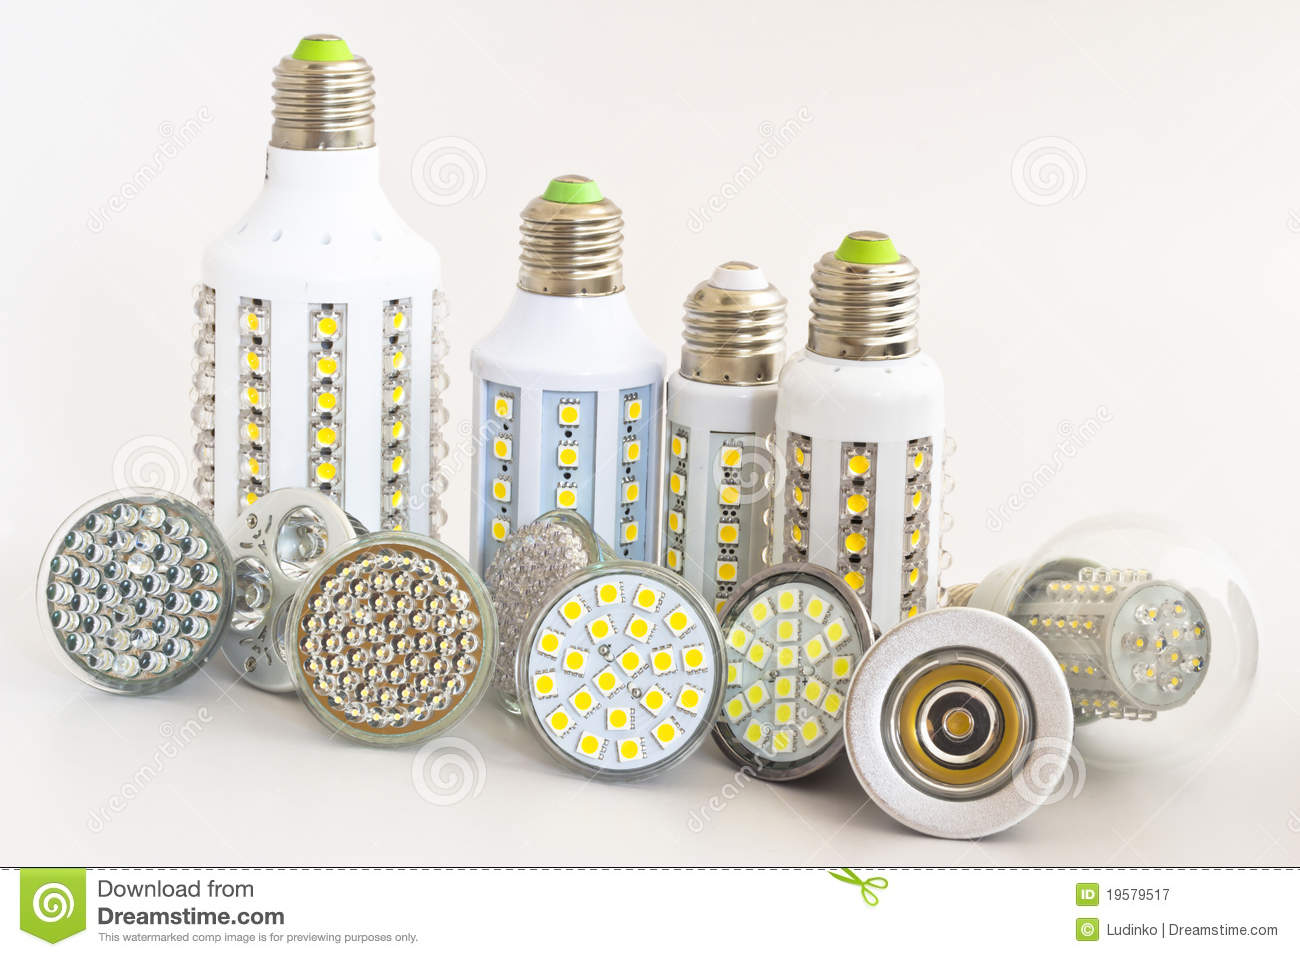 pin to learn lighting of about and look all the what different light bulbs types bulb for available